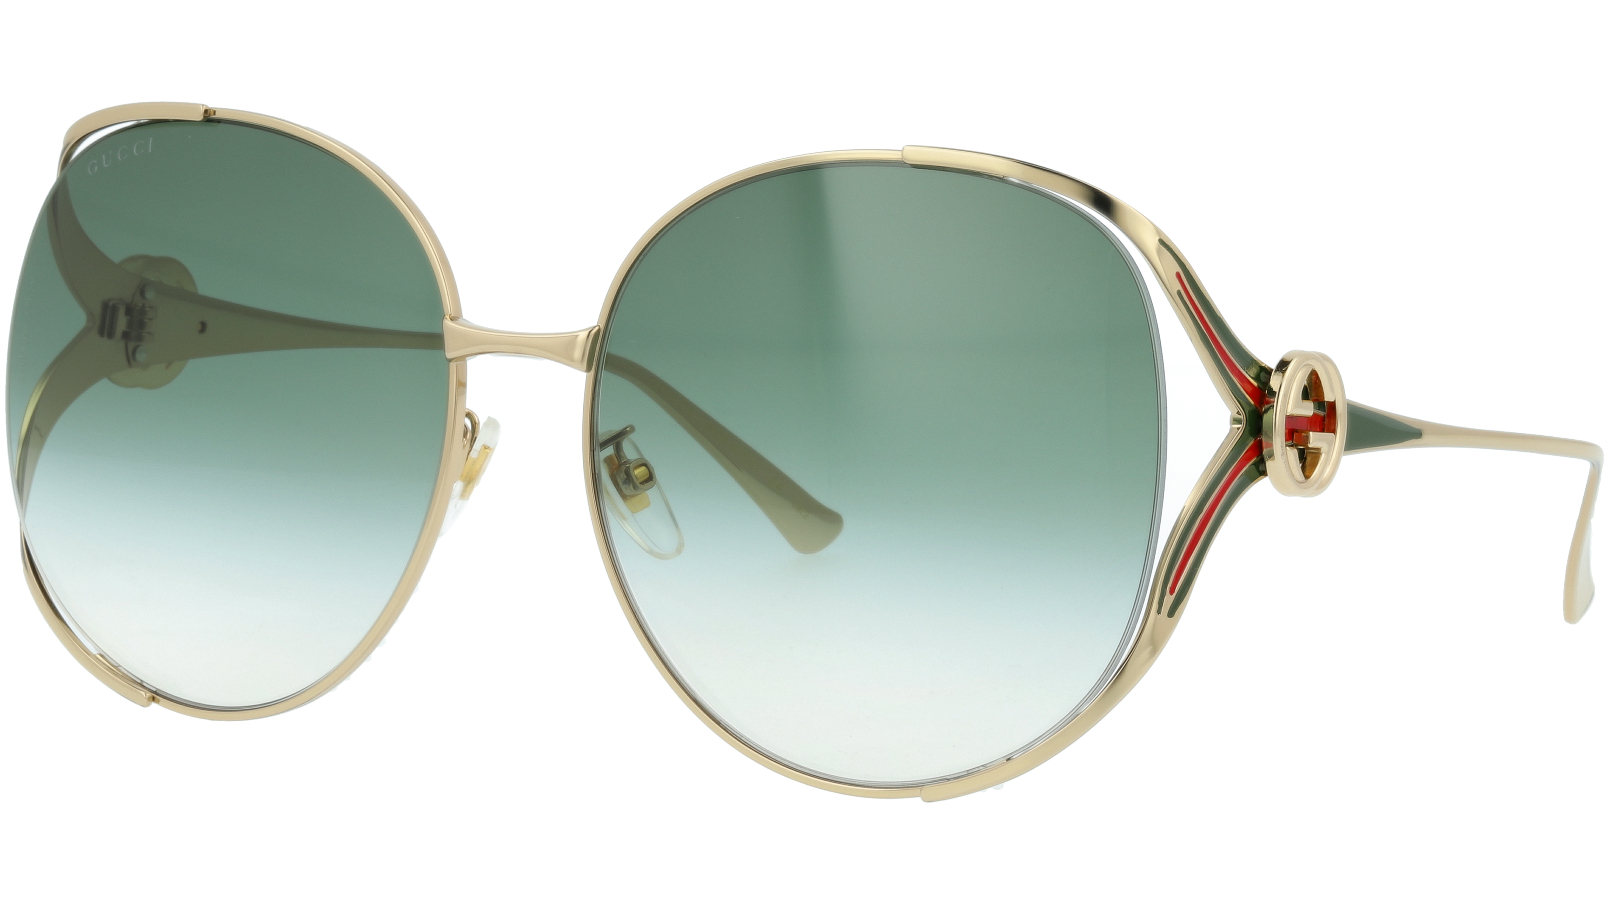 GUCCI GG0225S 005 63 GOLD Sunglasses